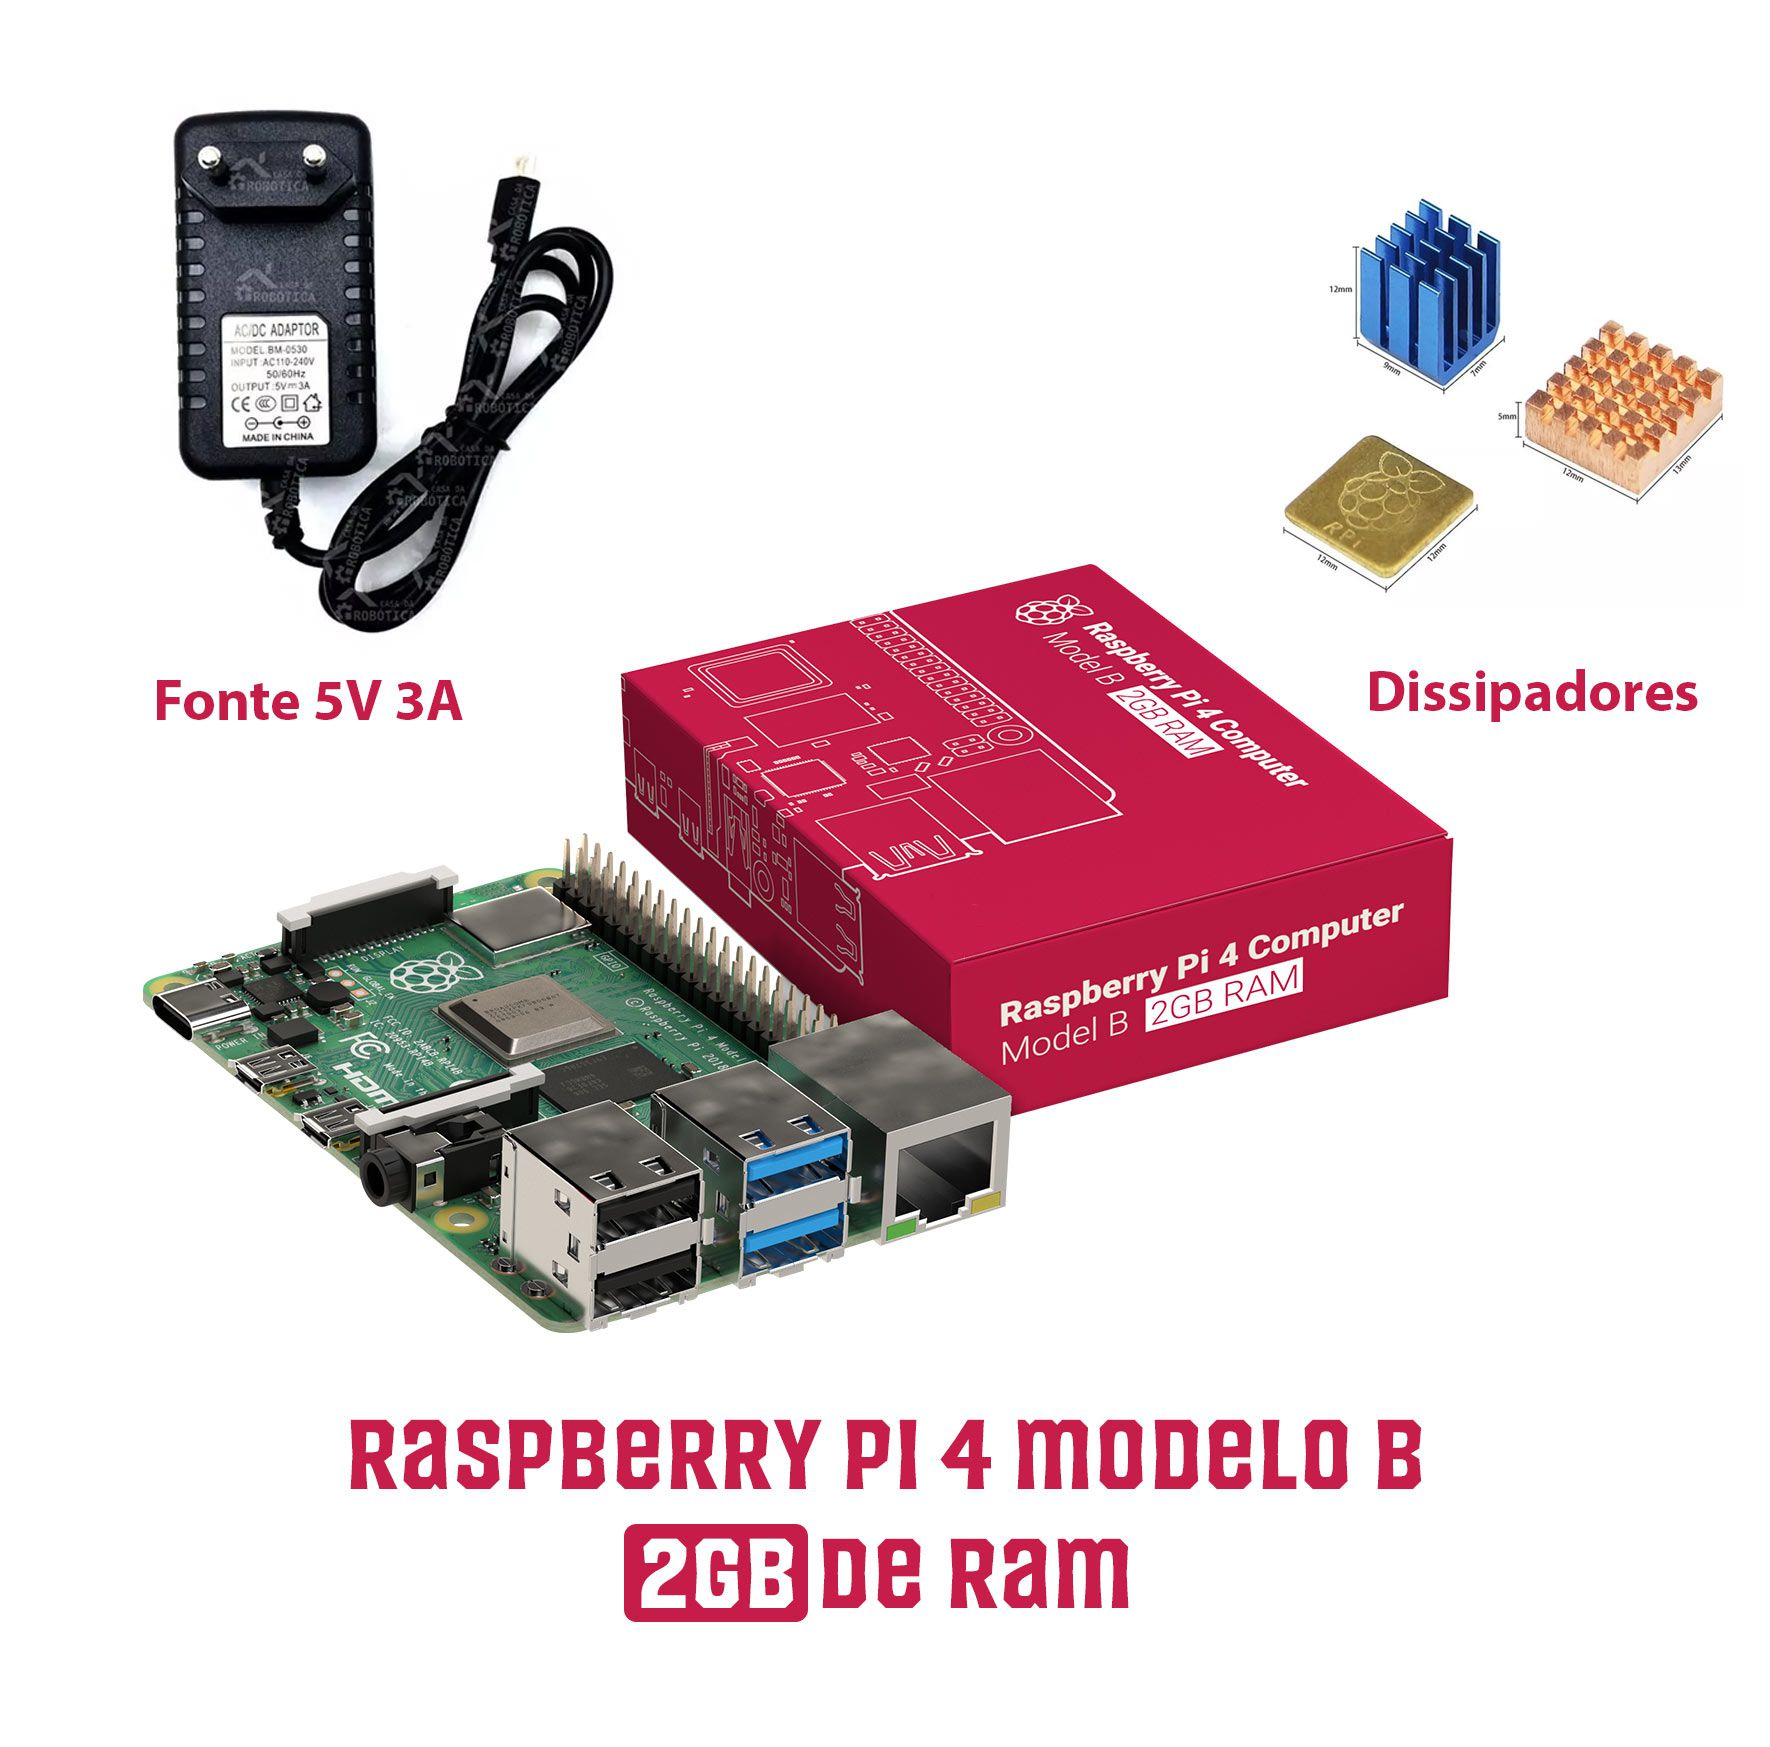 Kit com Placa Raspberry Pi 4 Pi4 Model B 2GB DDR4 + 3 Dissipadores + Fonte 5V 3A